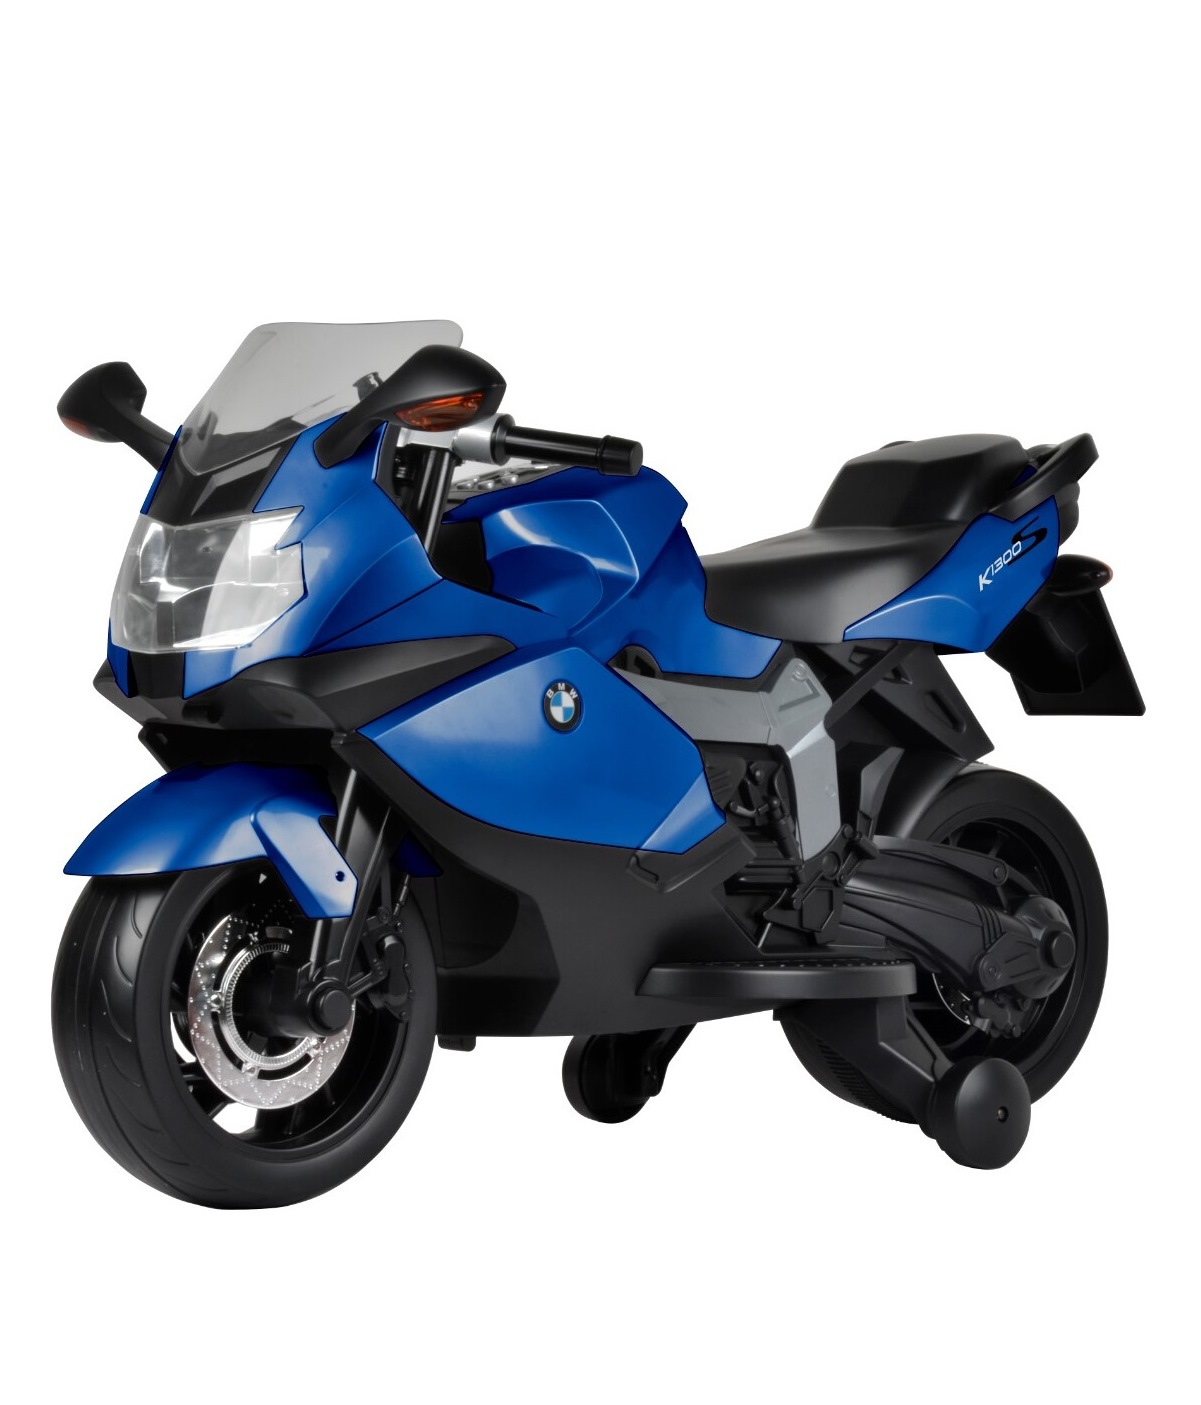 battery operated bmw motorbike scooter k1300s (blue/red/white